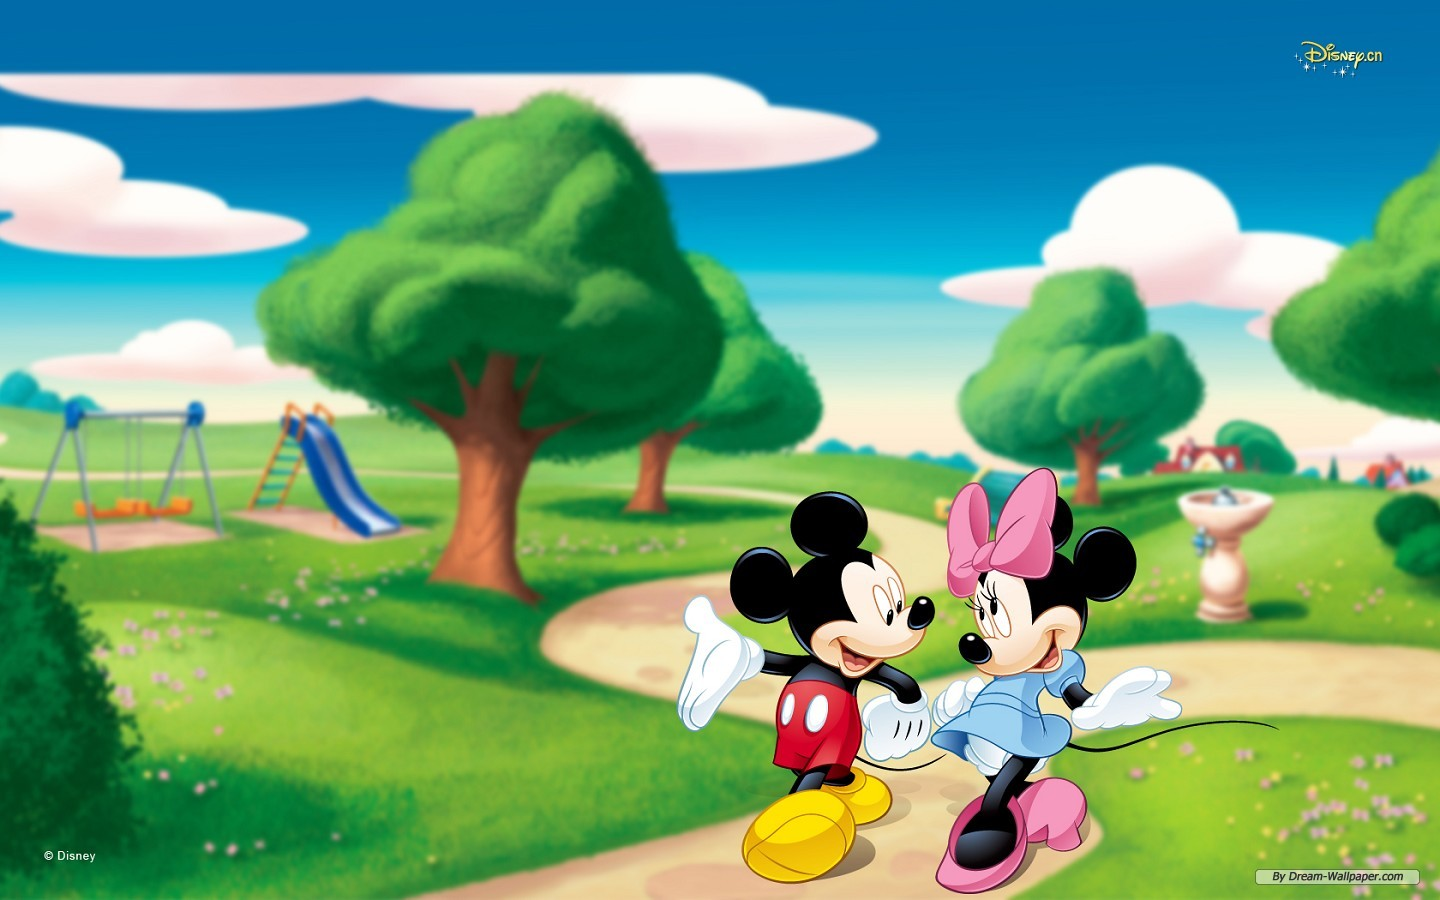 Wallpaper   Cartoon wallpaper   Disney Theme 2 wallpaper 1440x900